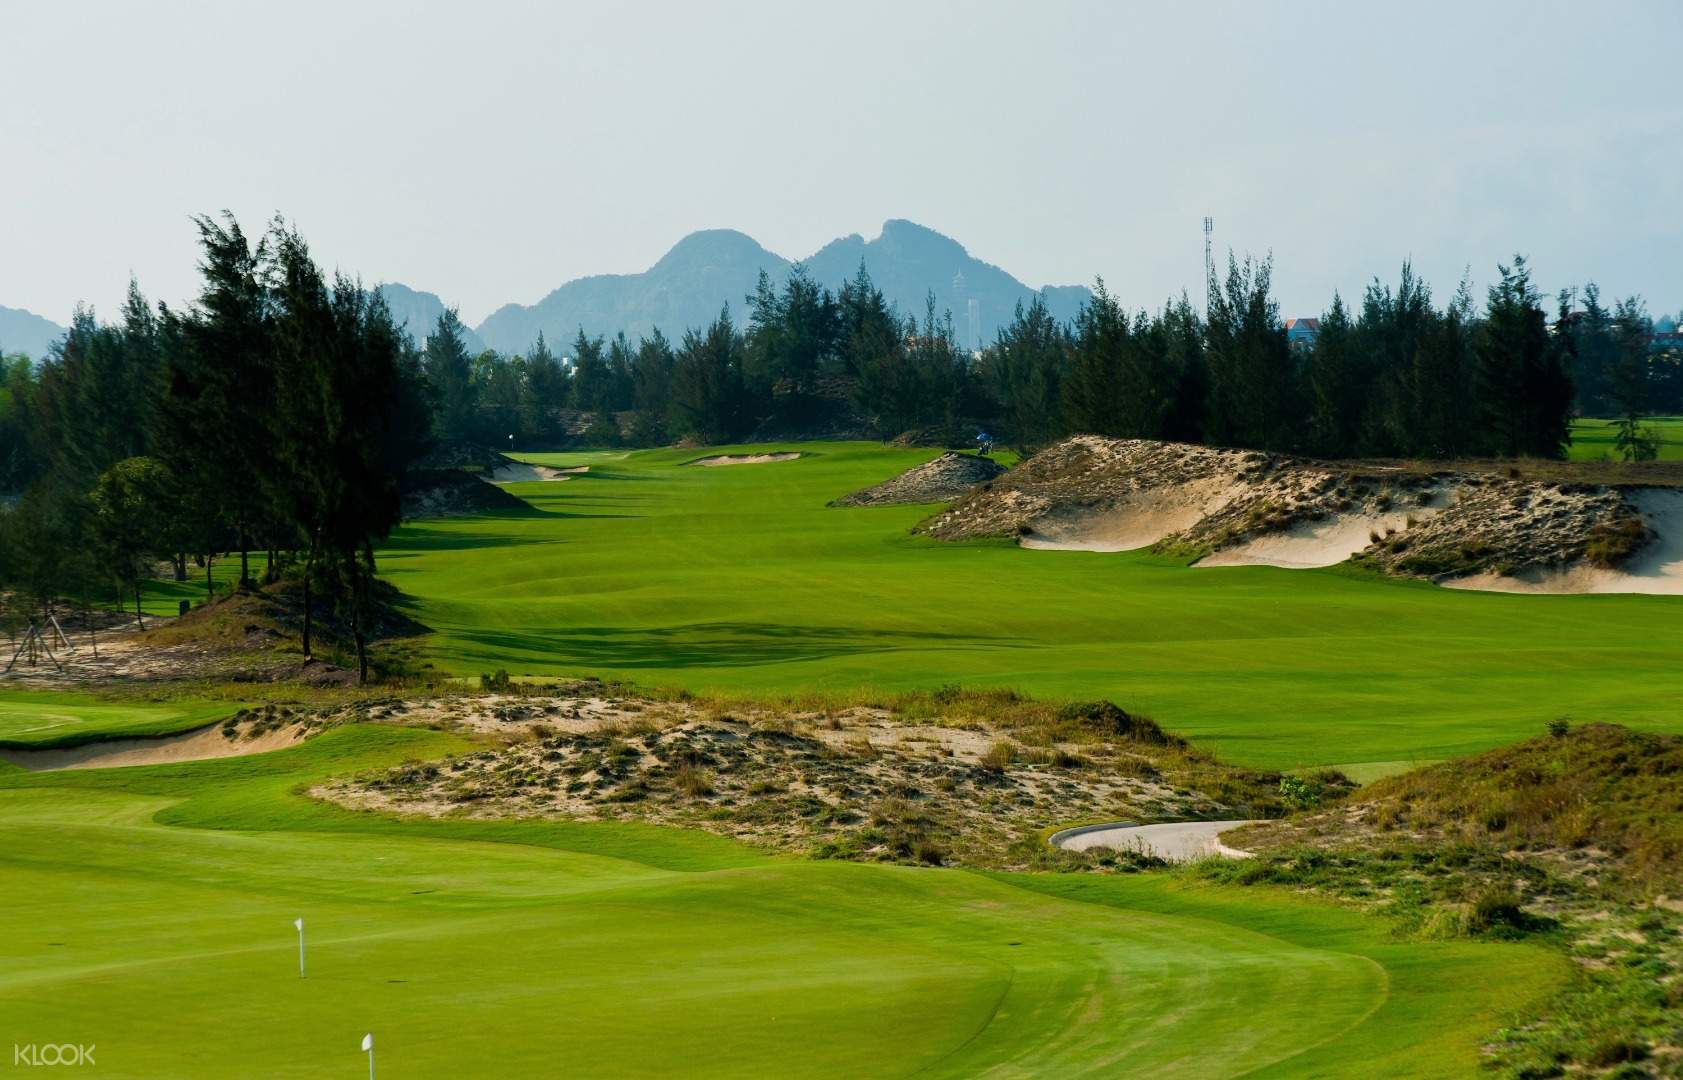 BRG Da Nang Golf Resort Experience in Da Nang, Vietnam - Klook US